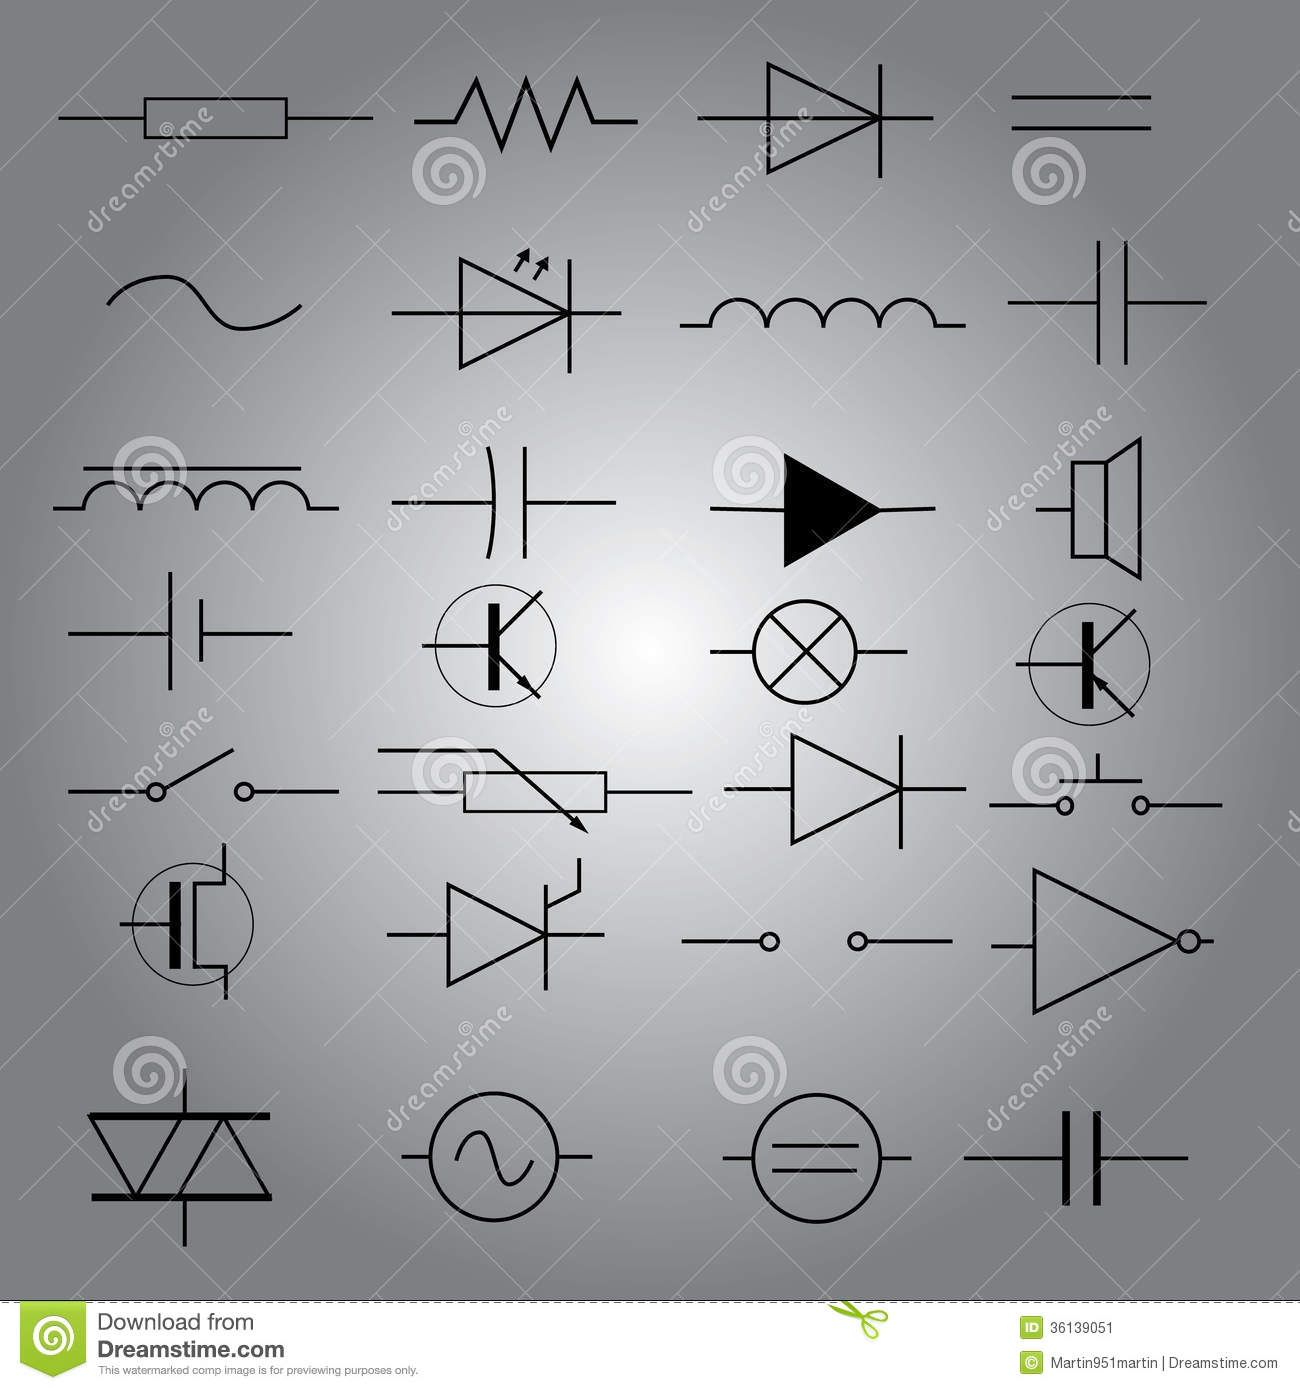 Electrical Diagram Symbols Free Download Wiring Diagram Schematic